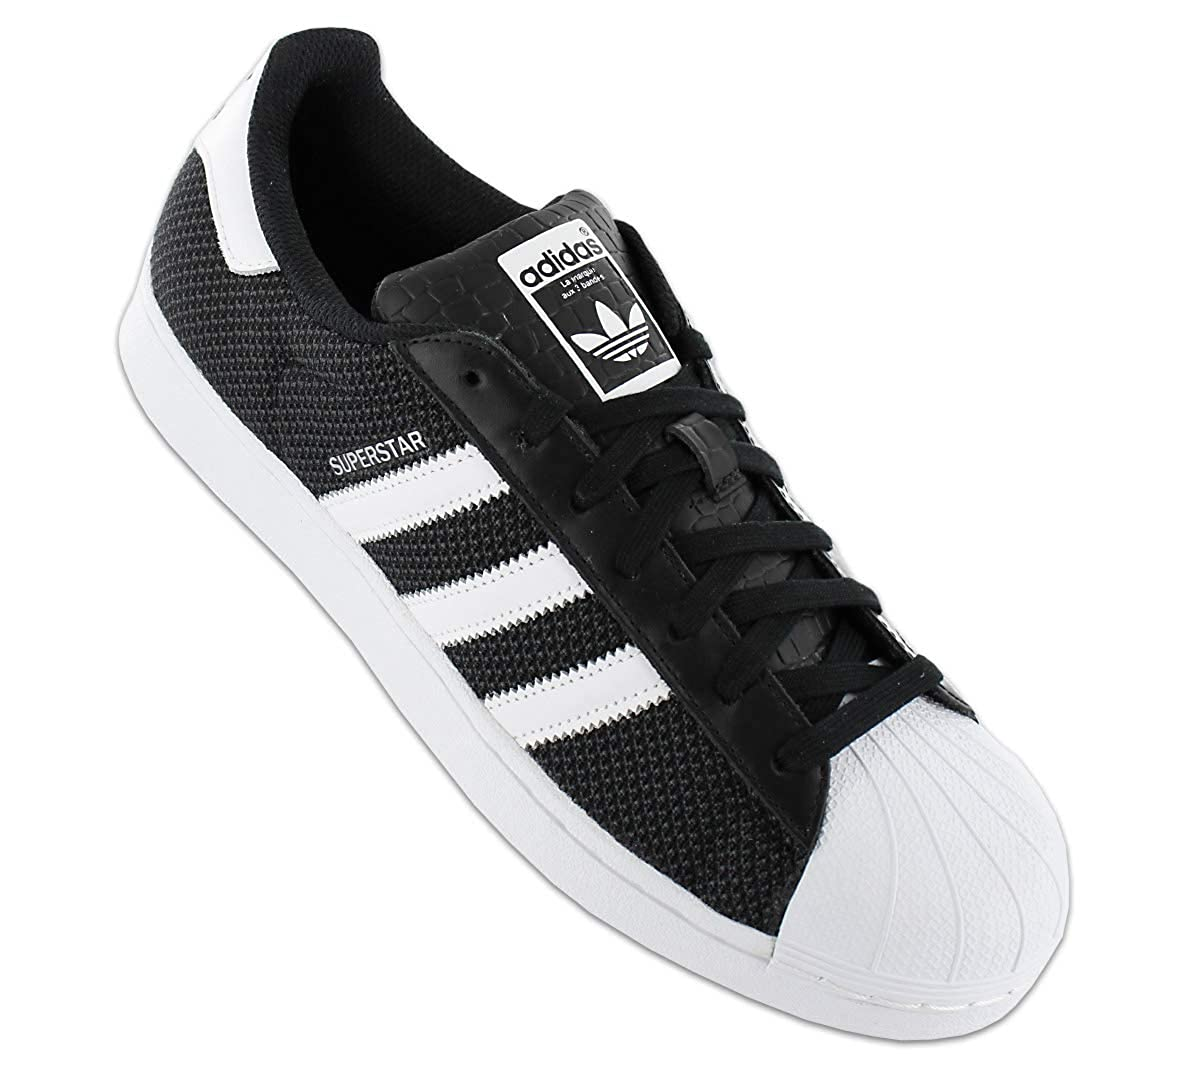 1da376c66330 adidas Men s Superstar Mesh Sneakers Black  Amazon.co.uk  Shoes   Bags